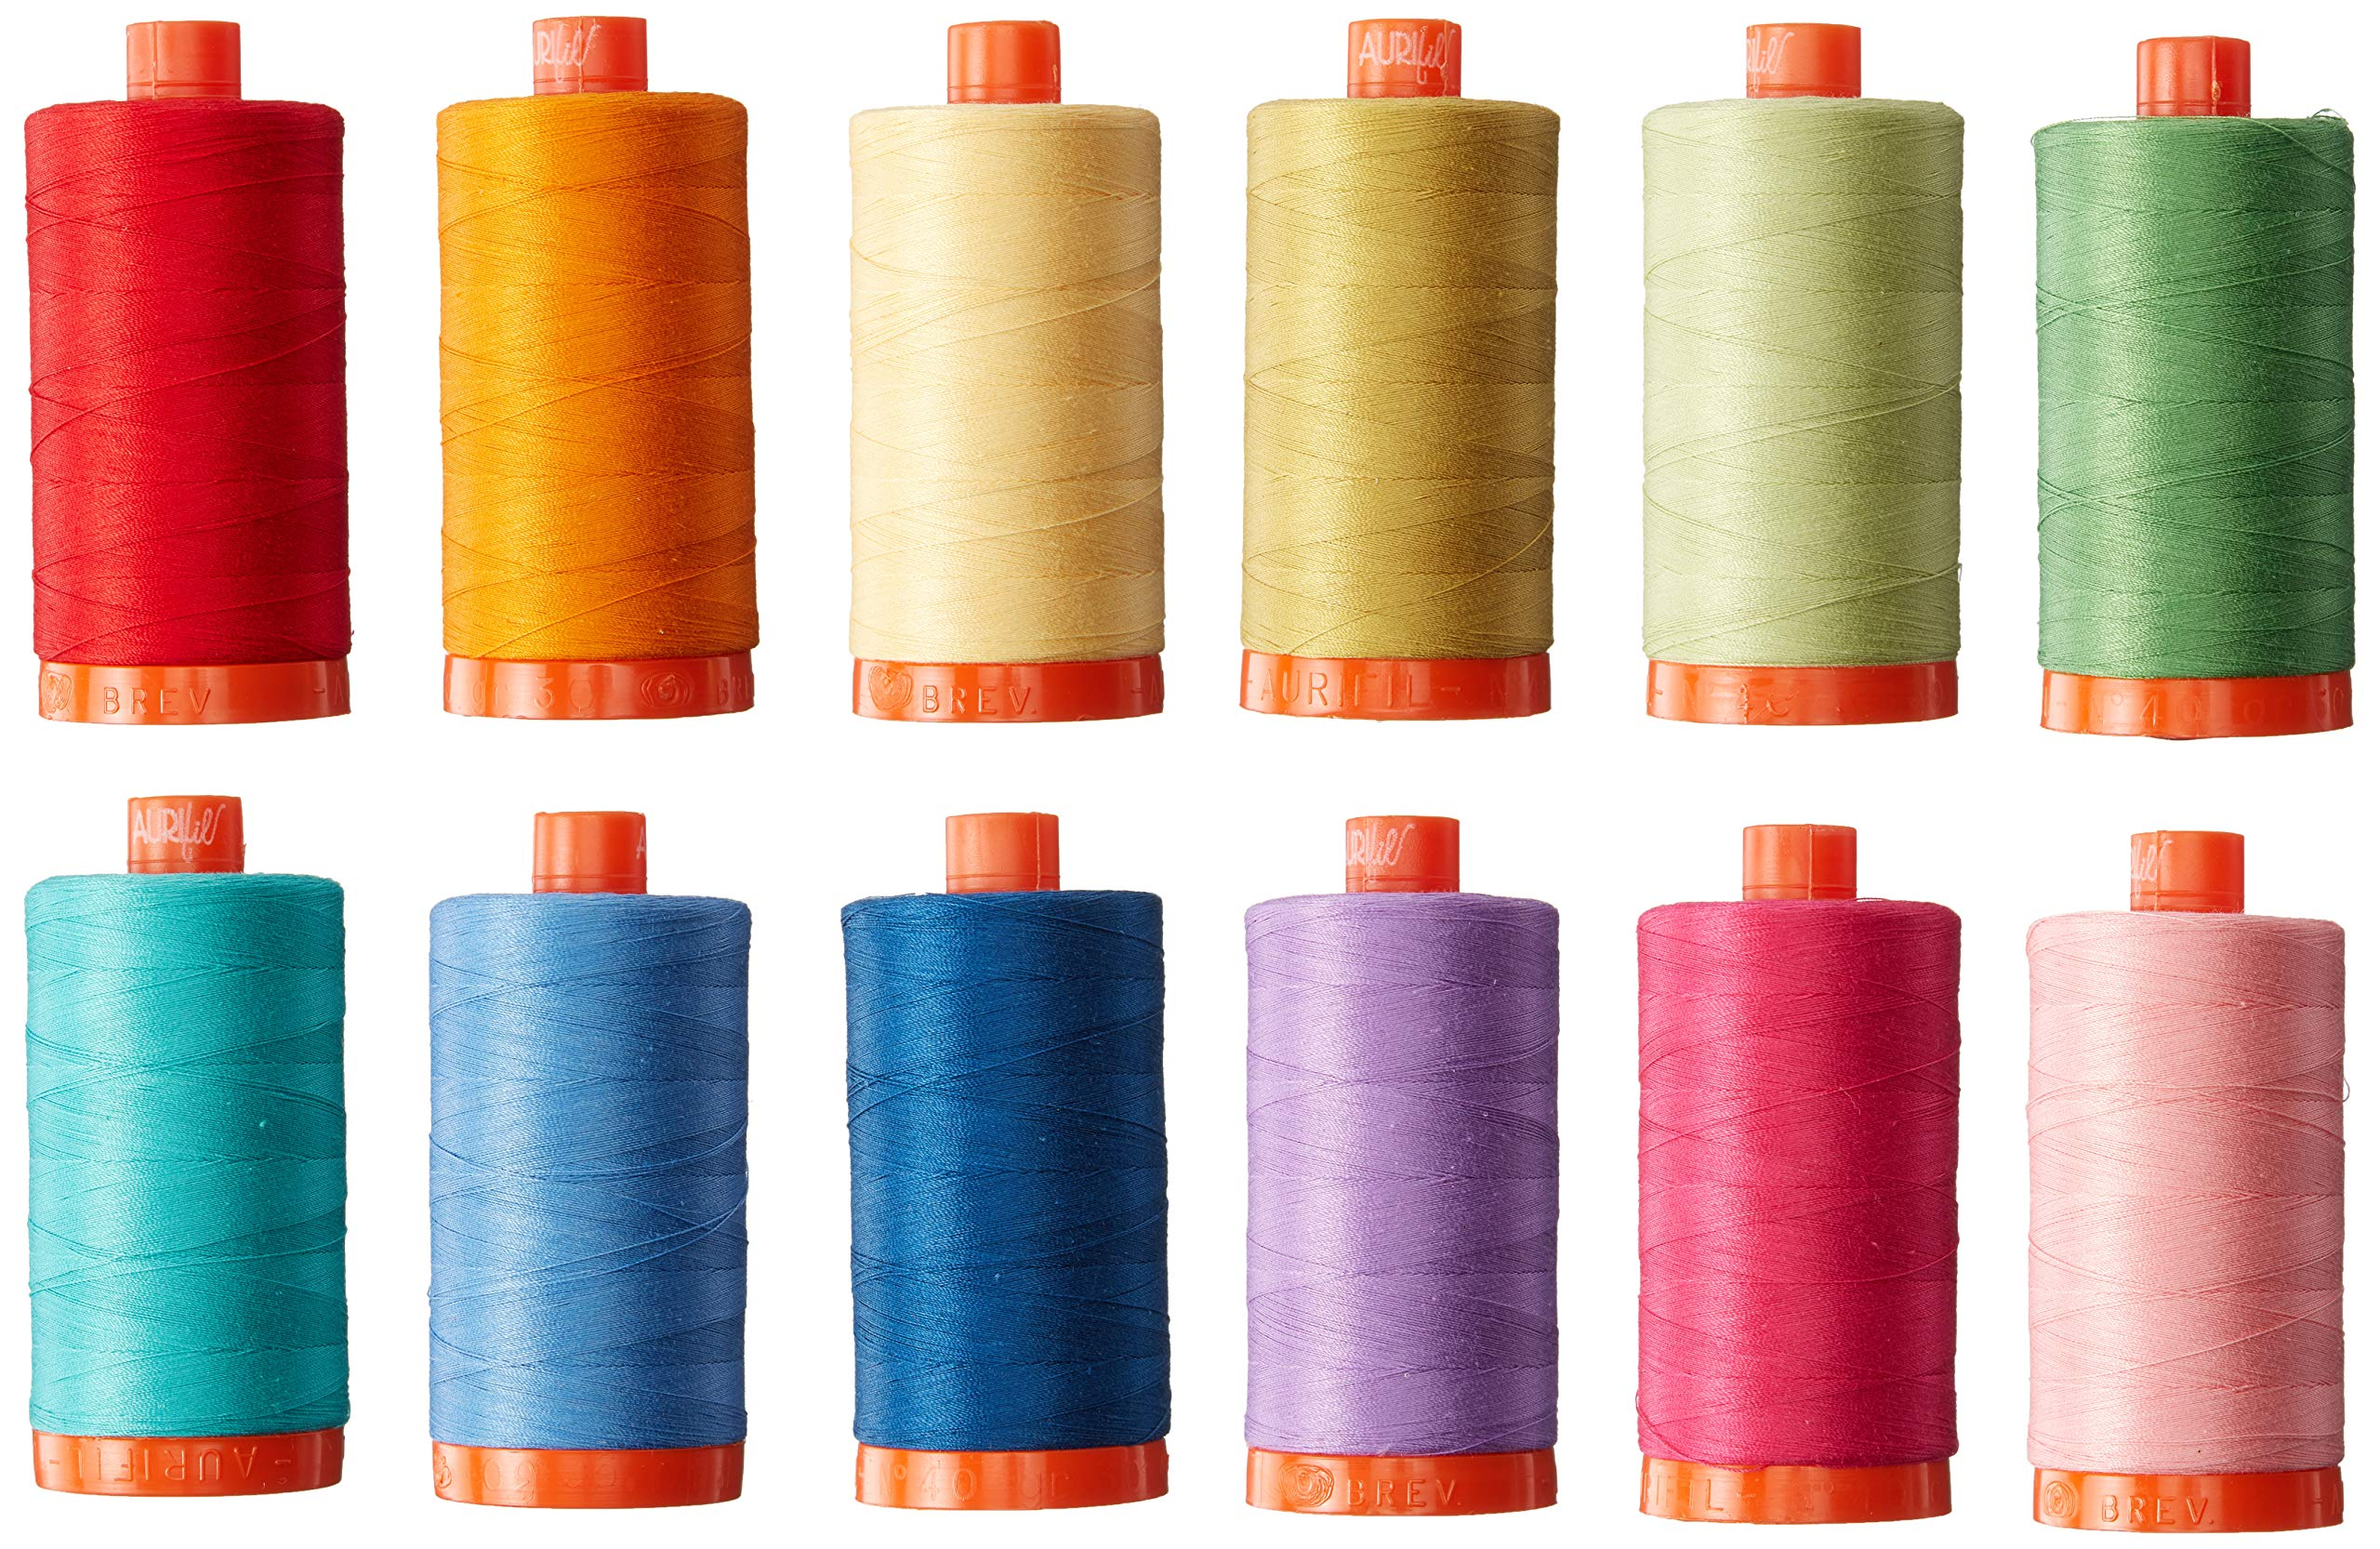 Aurifil CW50PQC12 Christa Quilts Piece and Quilt Colors Thread Kit 12 Large Spools 50 Weight by Aurifil